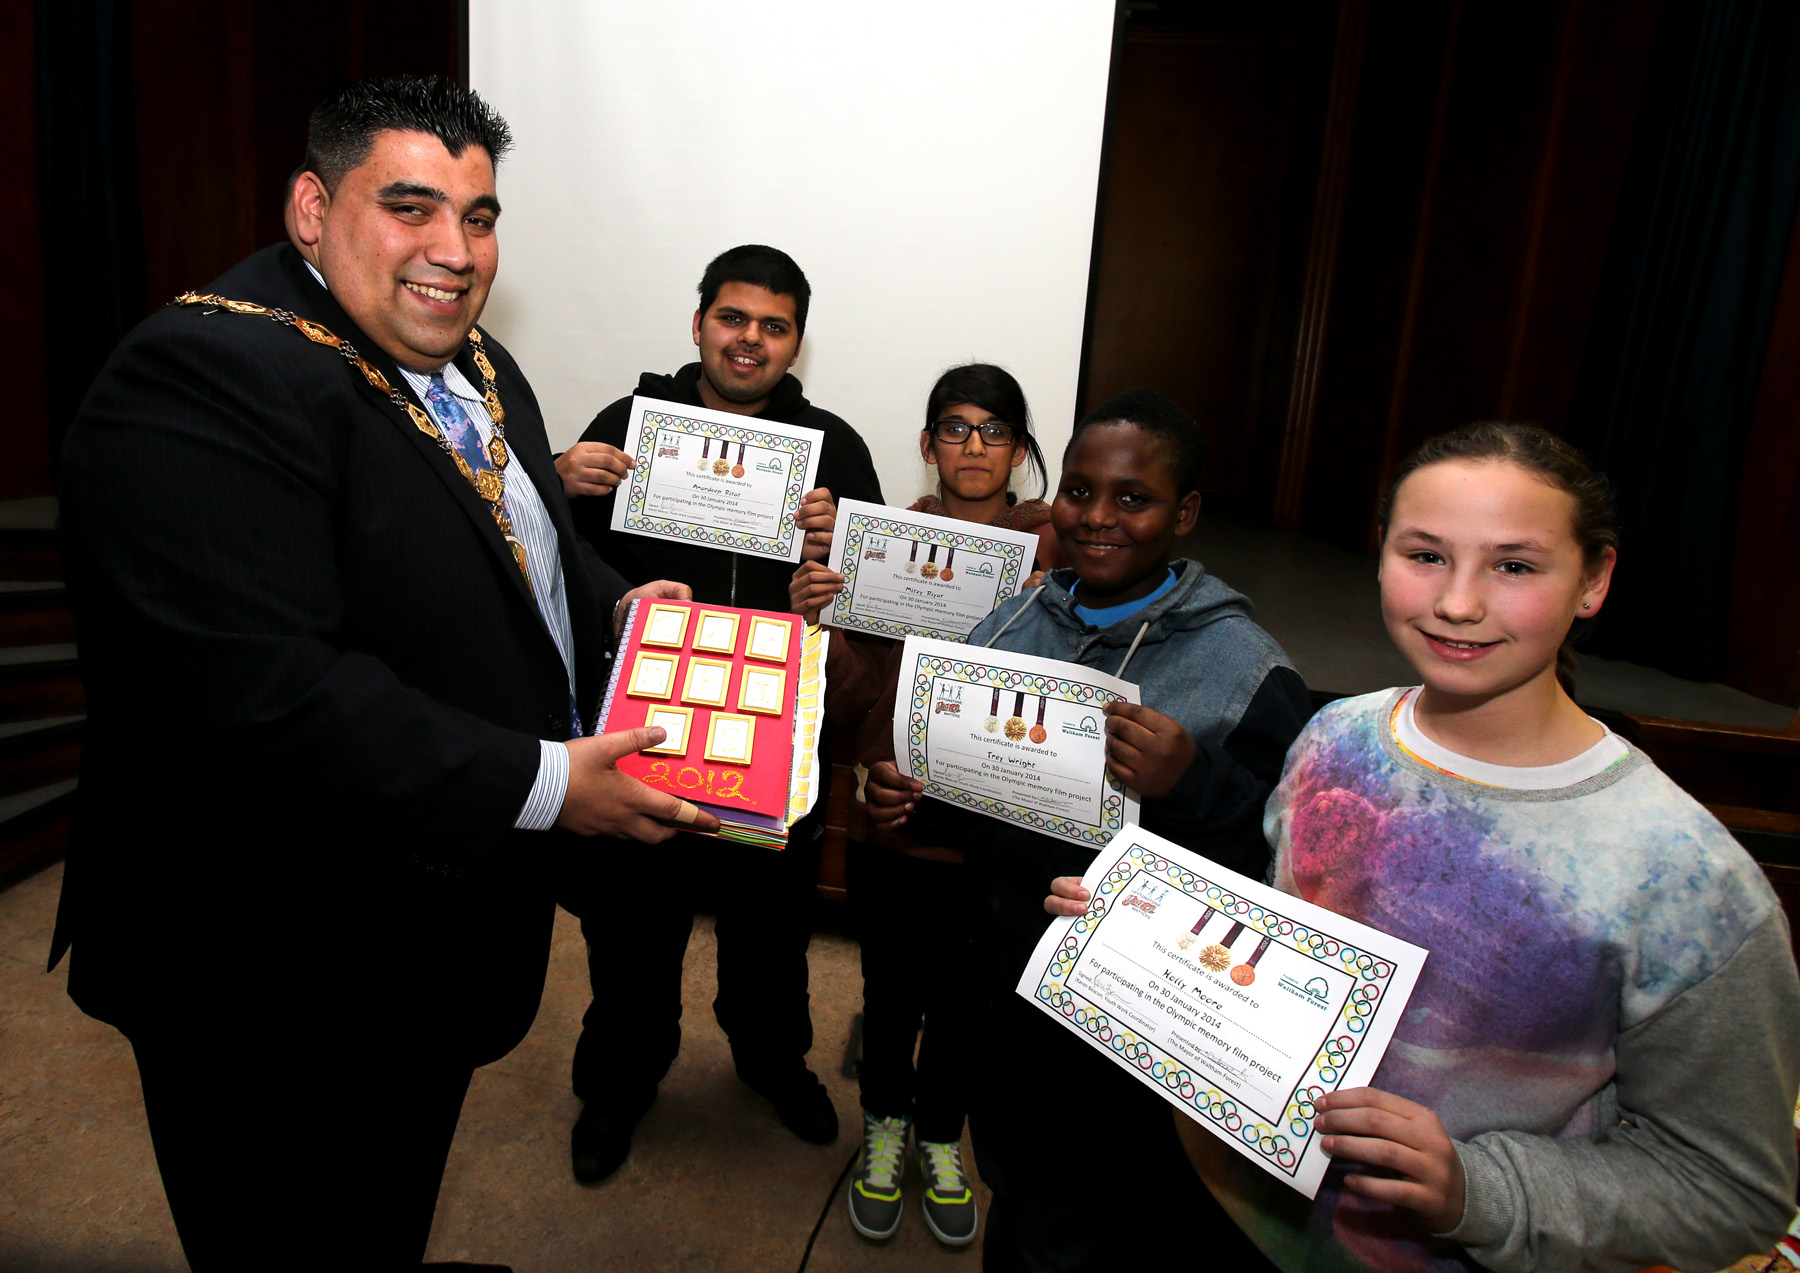 Waltham Forest Mayor Nadeem Ali with Leytonstone Youth Matters members Tray Wright, Amardeep Riyat, Mitsy Riyat, Holly Moore and their scrapbook.